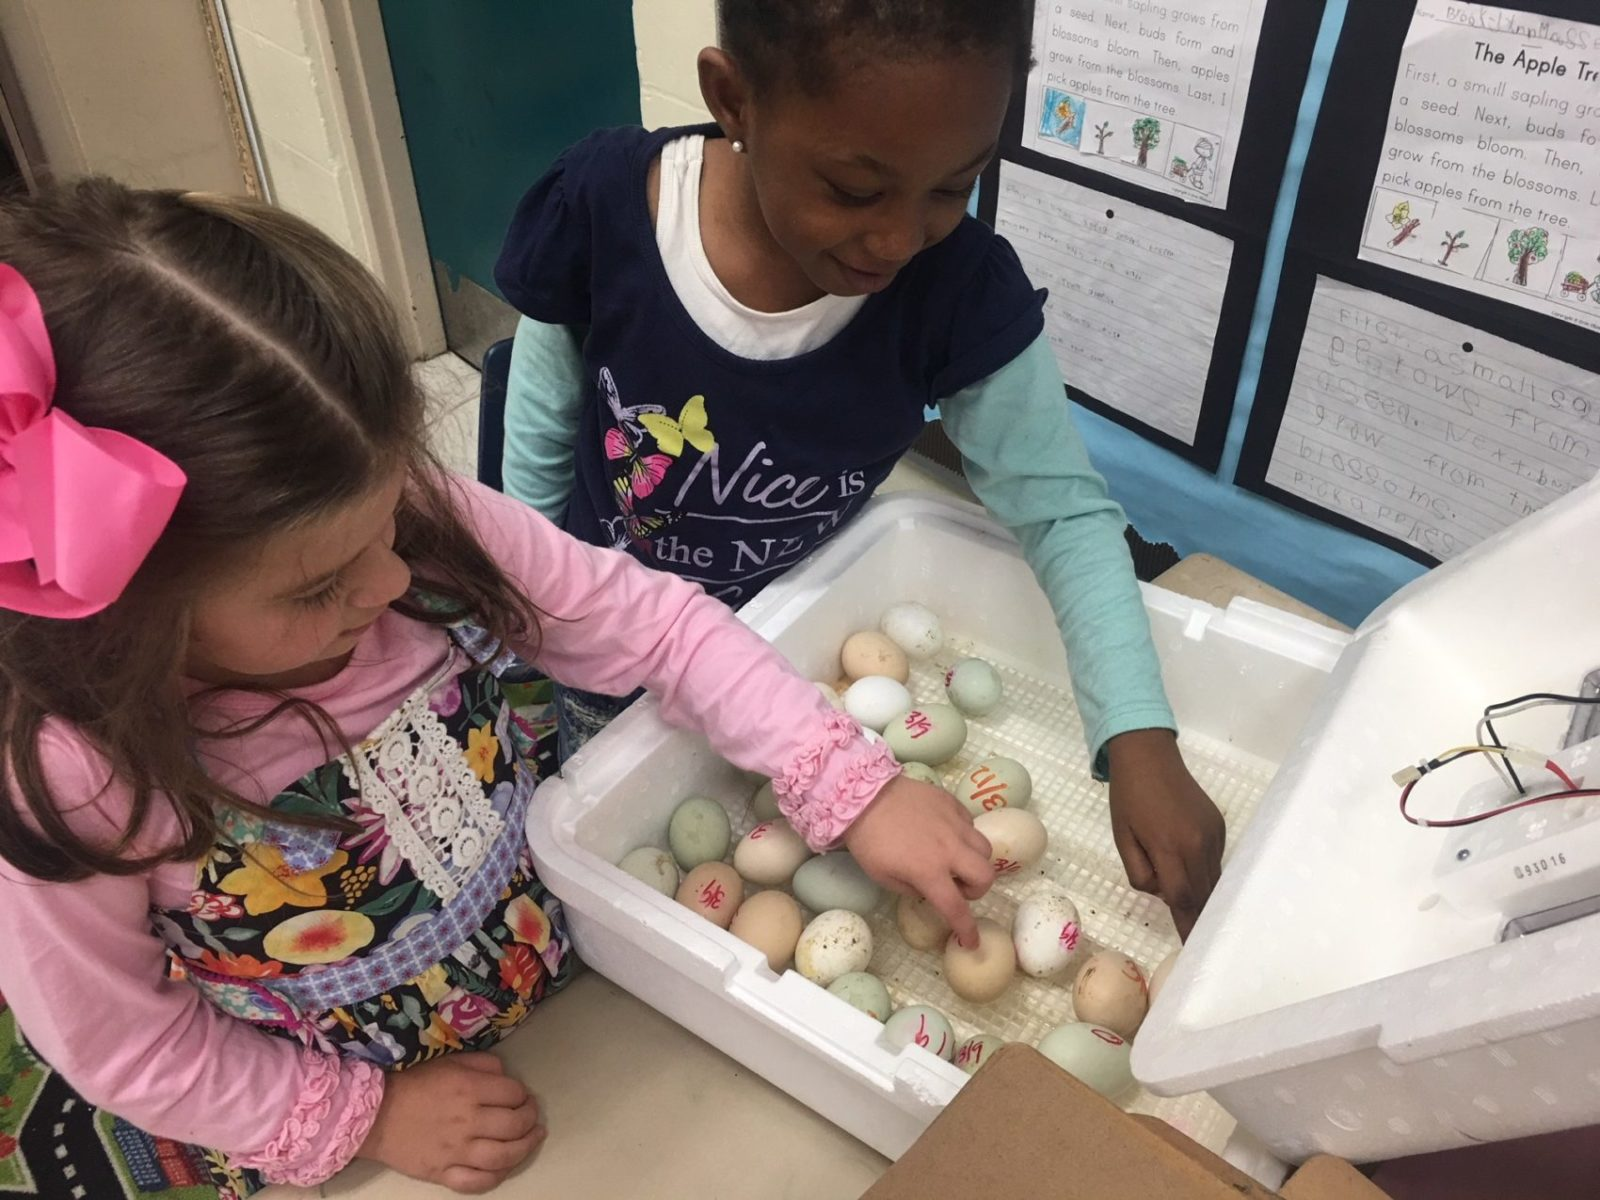 Two girls gently touch eggs in an incubator.